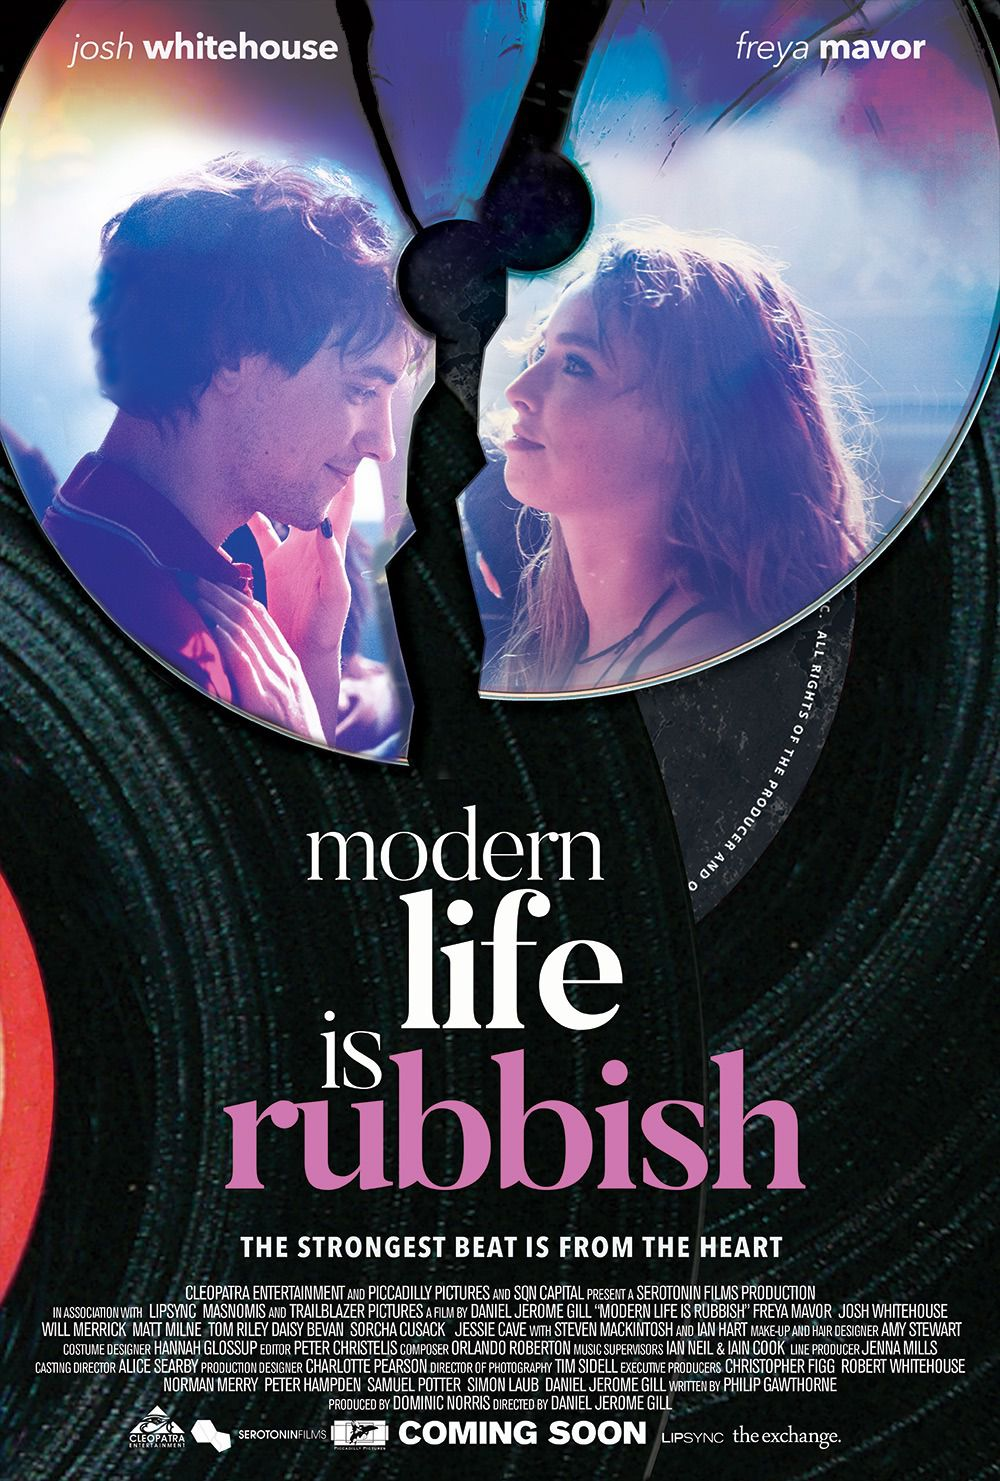 Modern Life is Rubbish - The strongest beat is from the heart - Cast: Josh Whitehouse, Freya Mavor - love poster